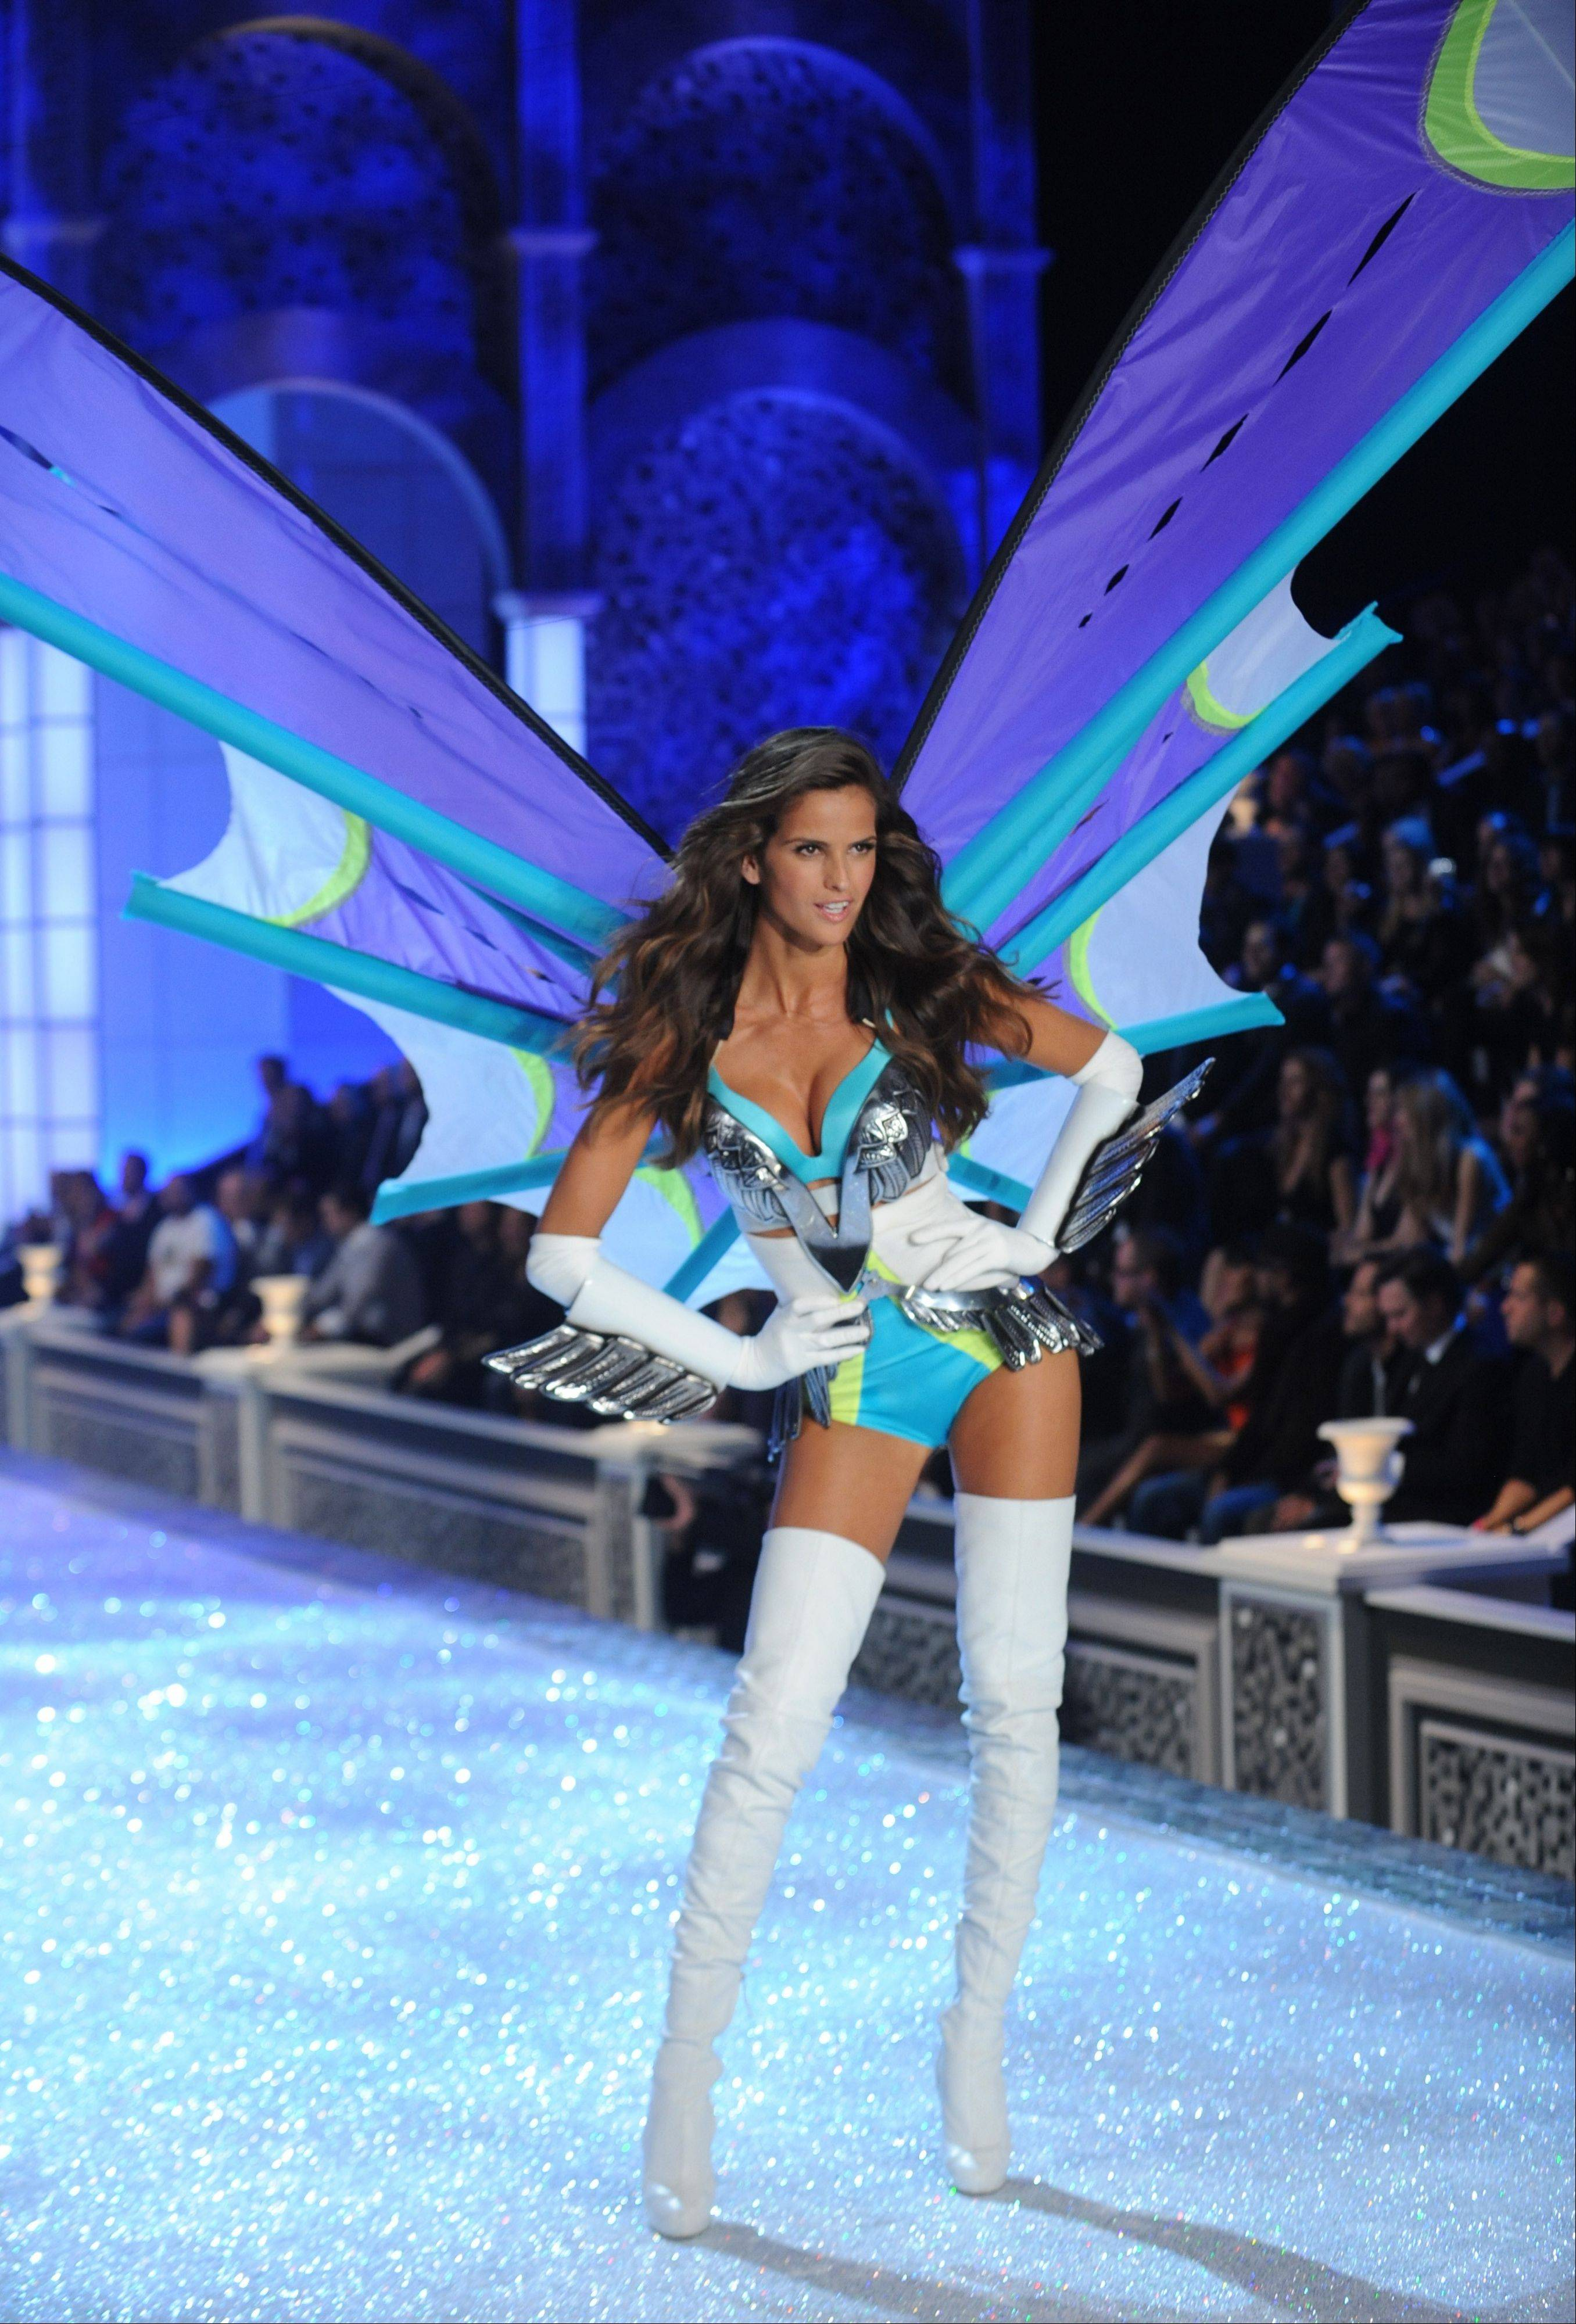 A model walks the runway during the Victoria's Secret fashion show in New York, Wednesday.